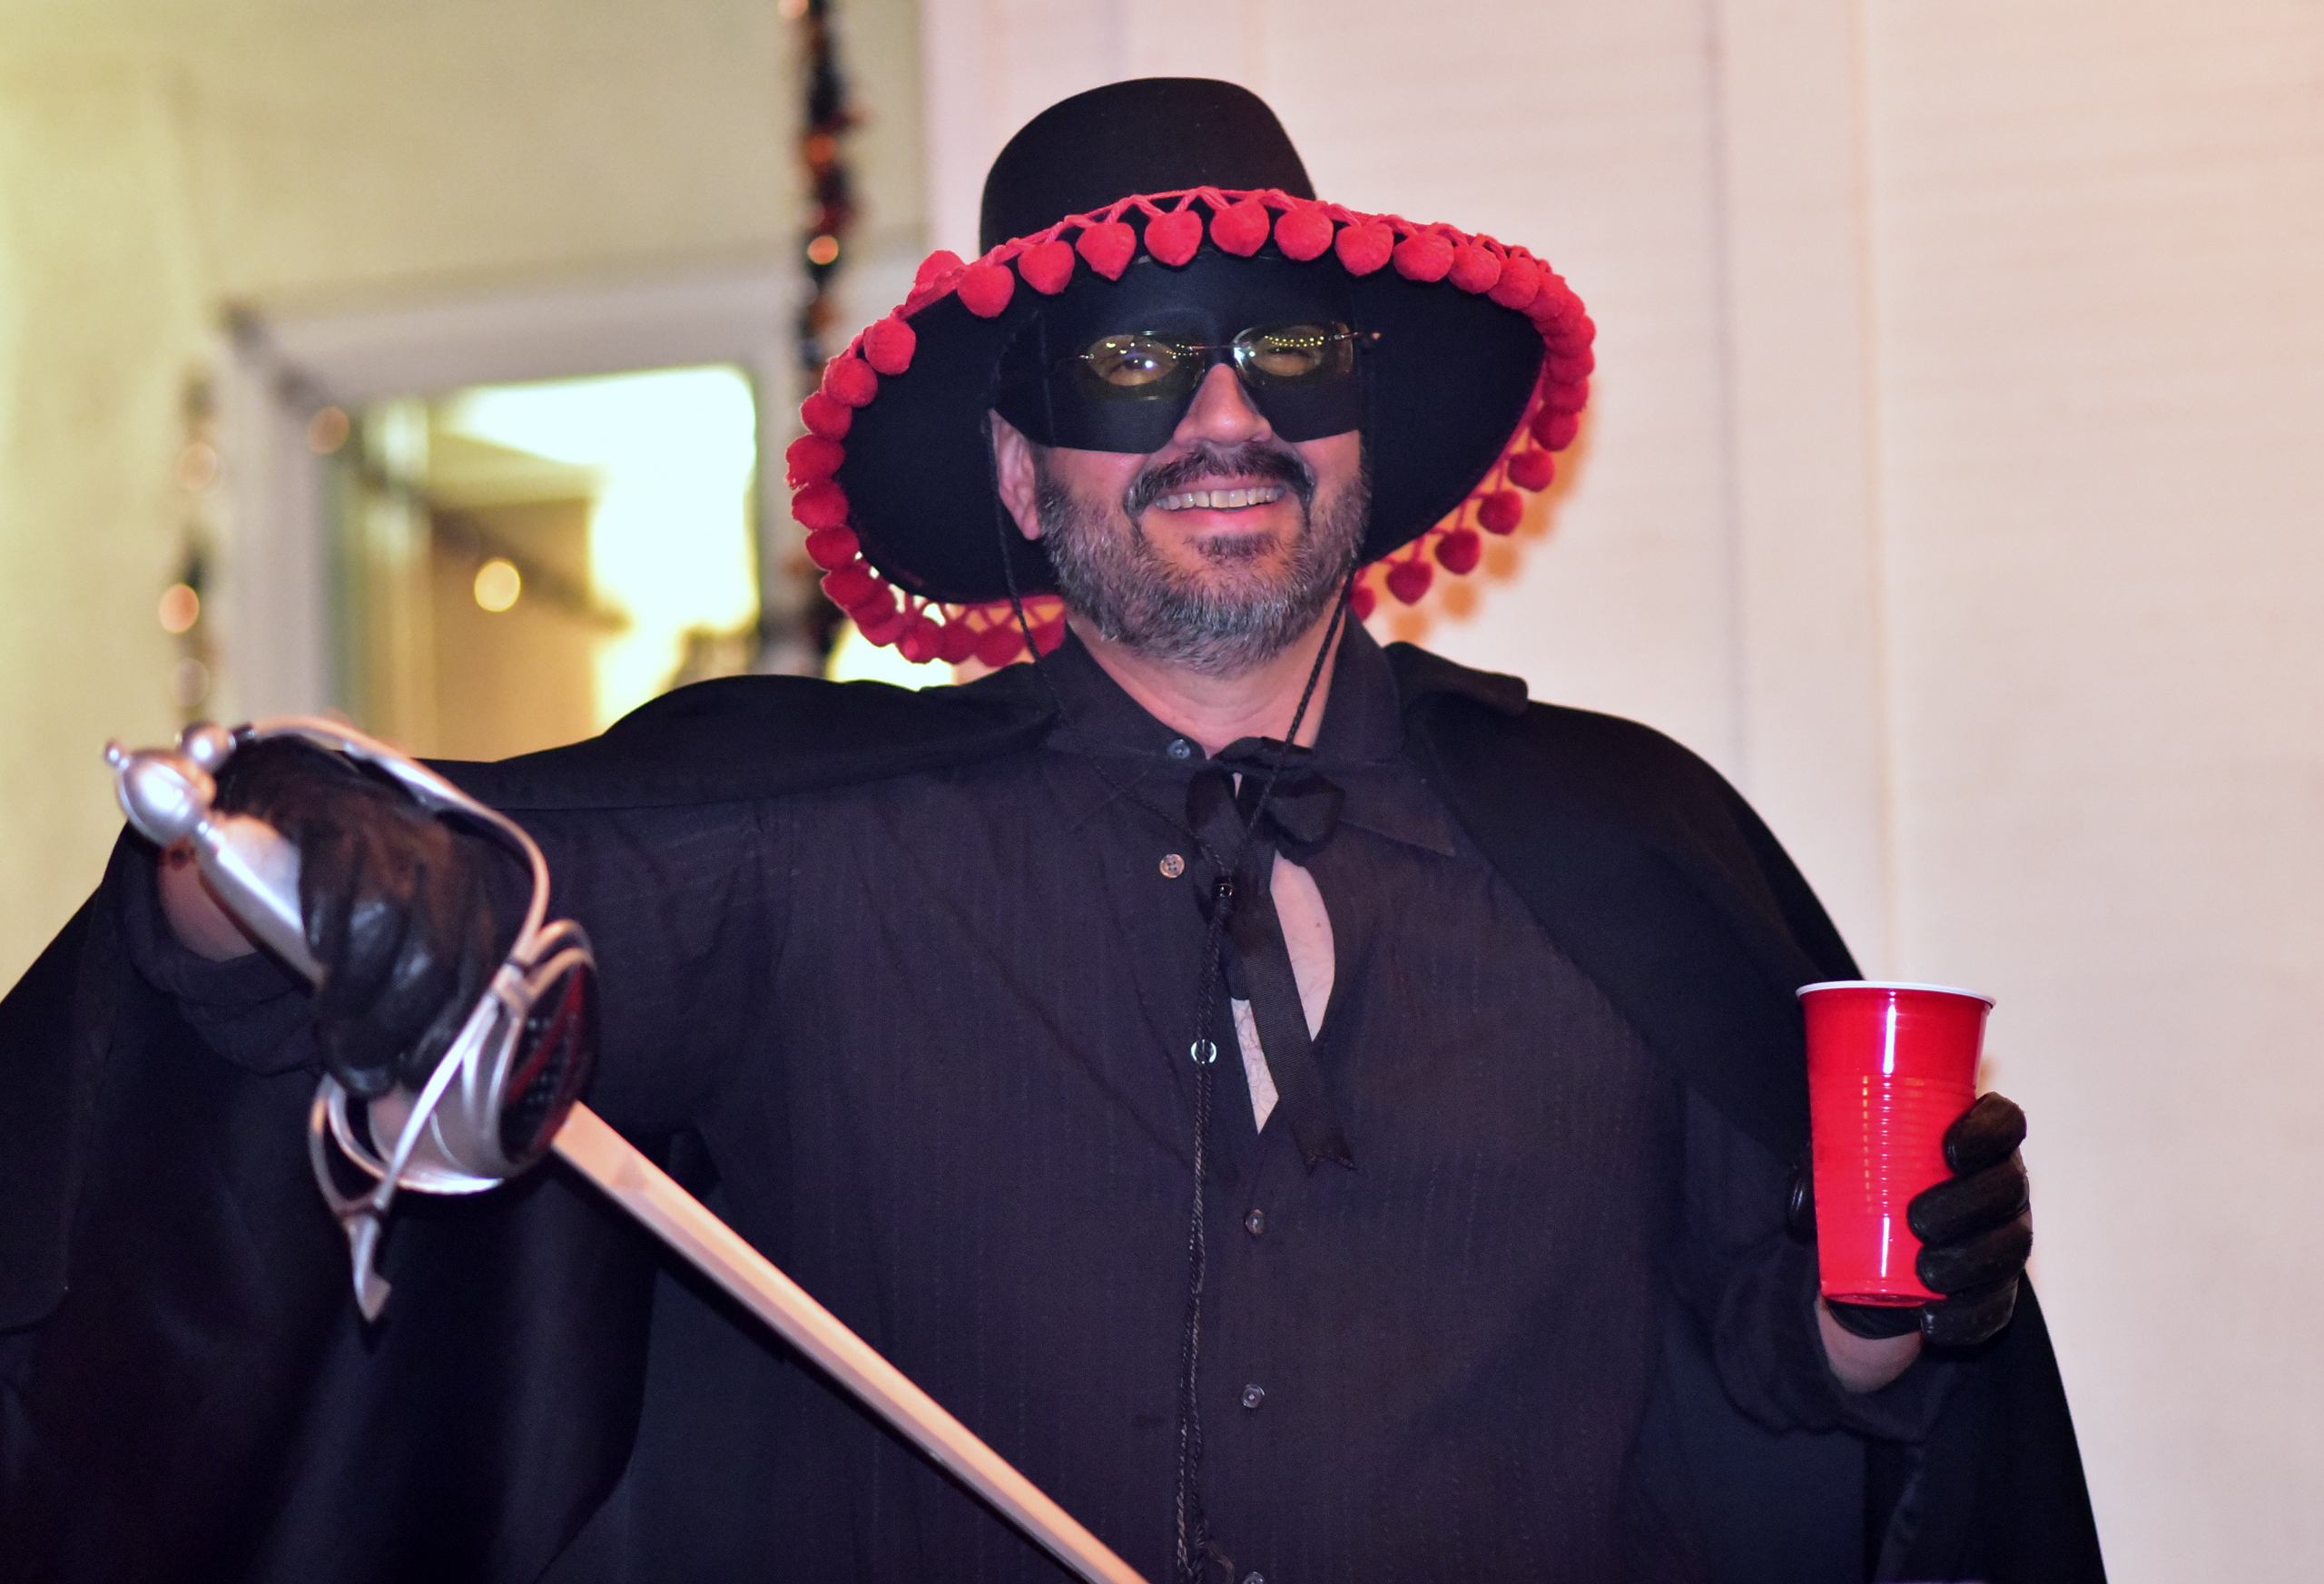 Raul Perez as Zorro at Fritzie & Jimmy Perez' 2016 Halloween Party in Hacienda Heights, CA